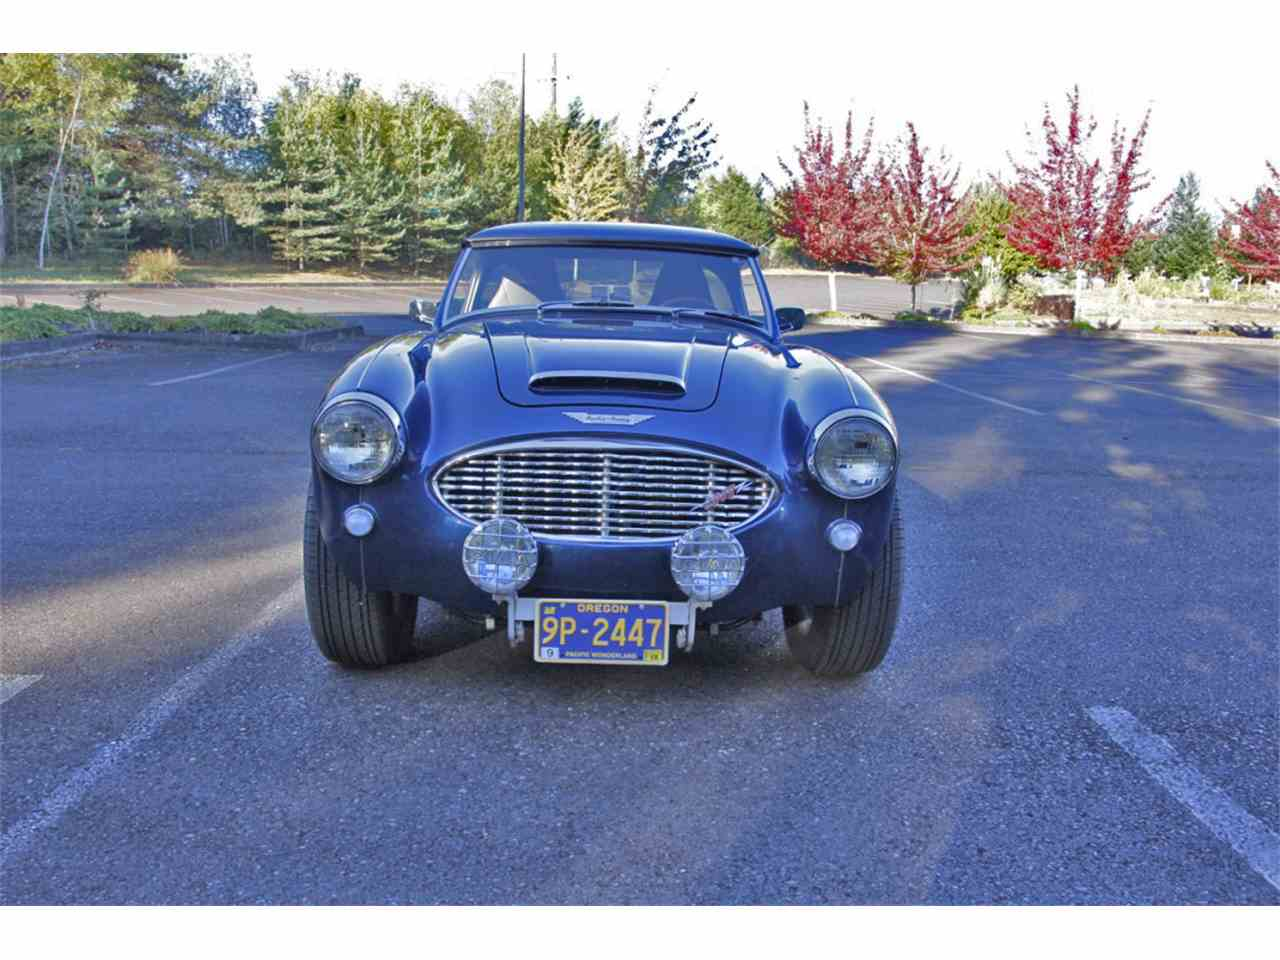 Large Picture of '59 Austin-Healey 3000 Mark I BN7 - $45,000.00 Offered by a Private Seller - LU6O